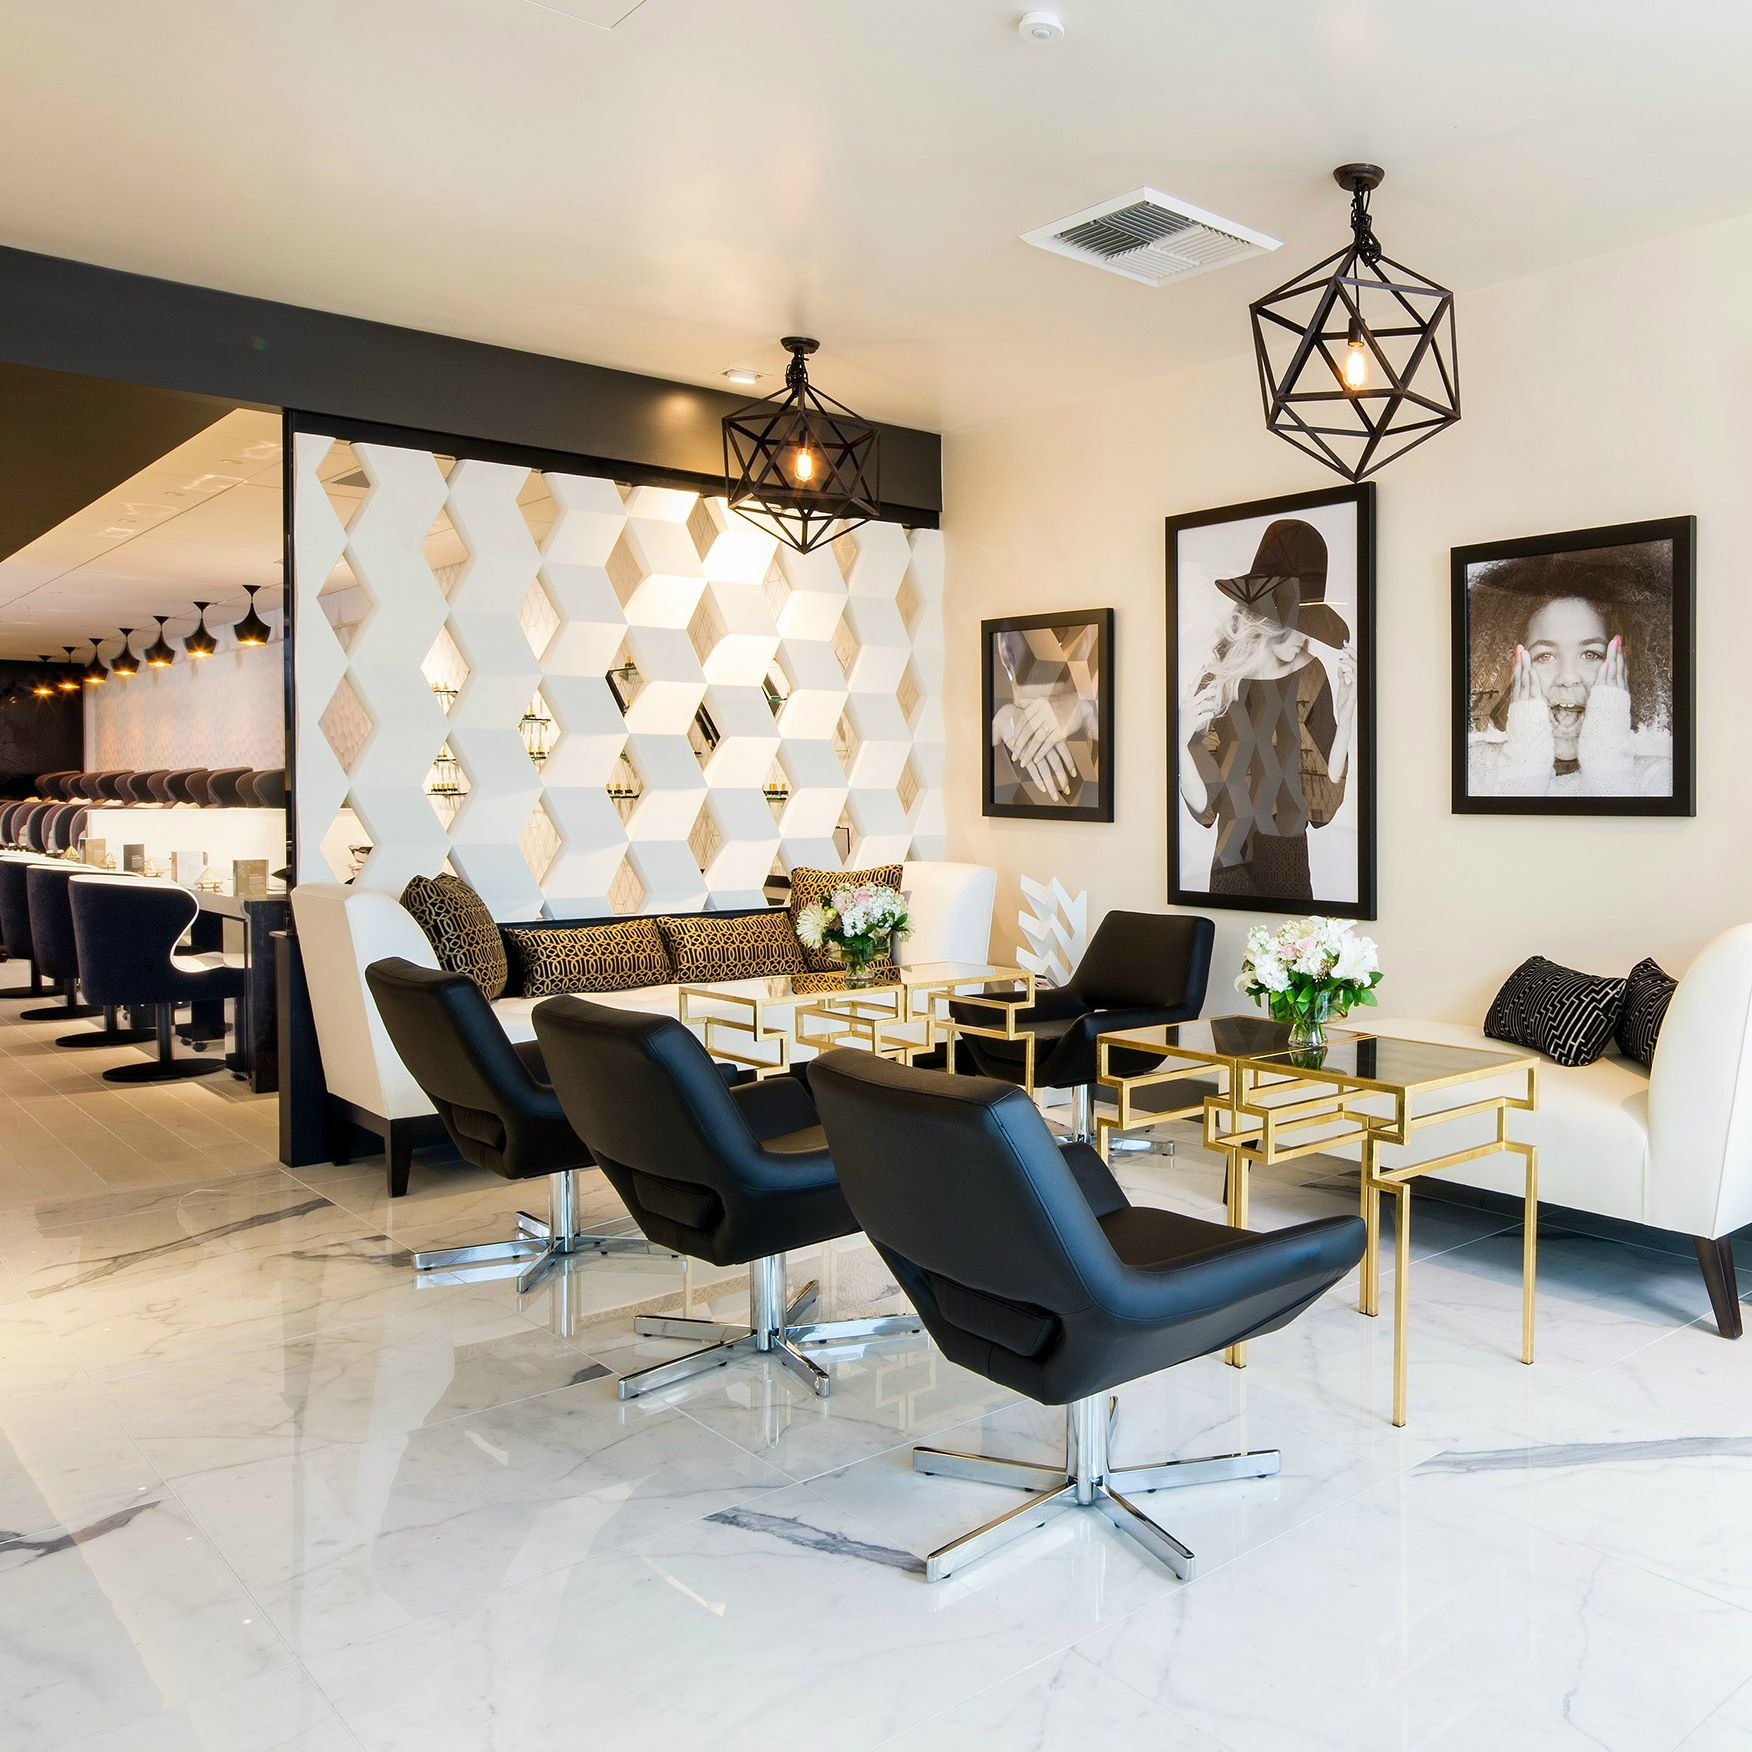 Fancy Manicure Salon Decoration: Salon Interior Inspiration